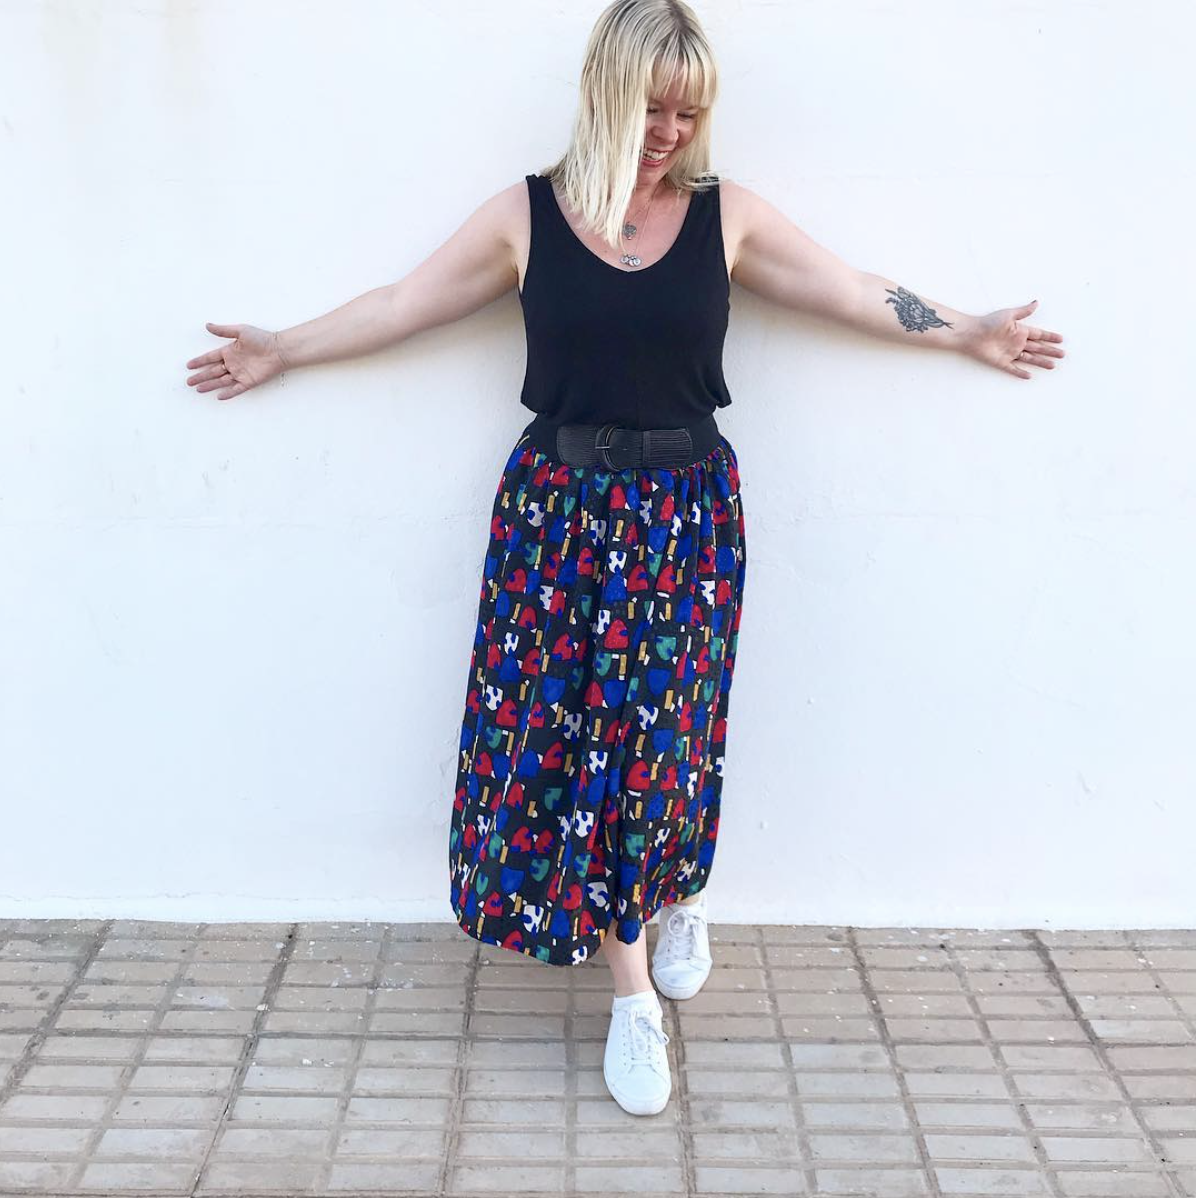 Beccy in her Miro Full Skirt